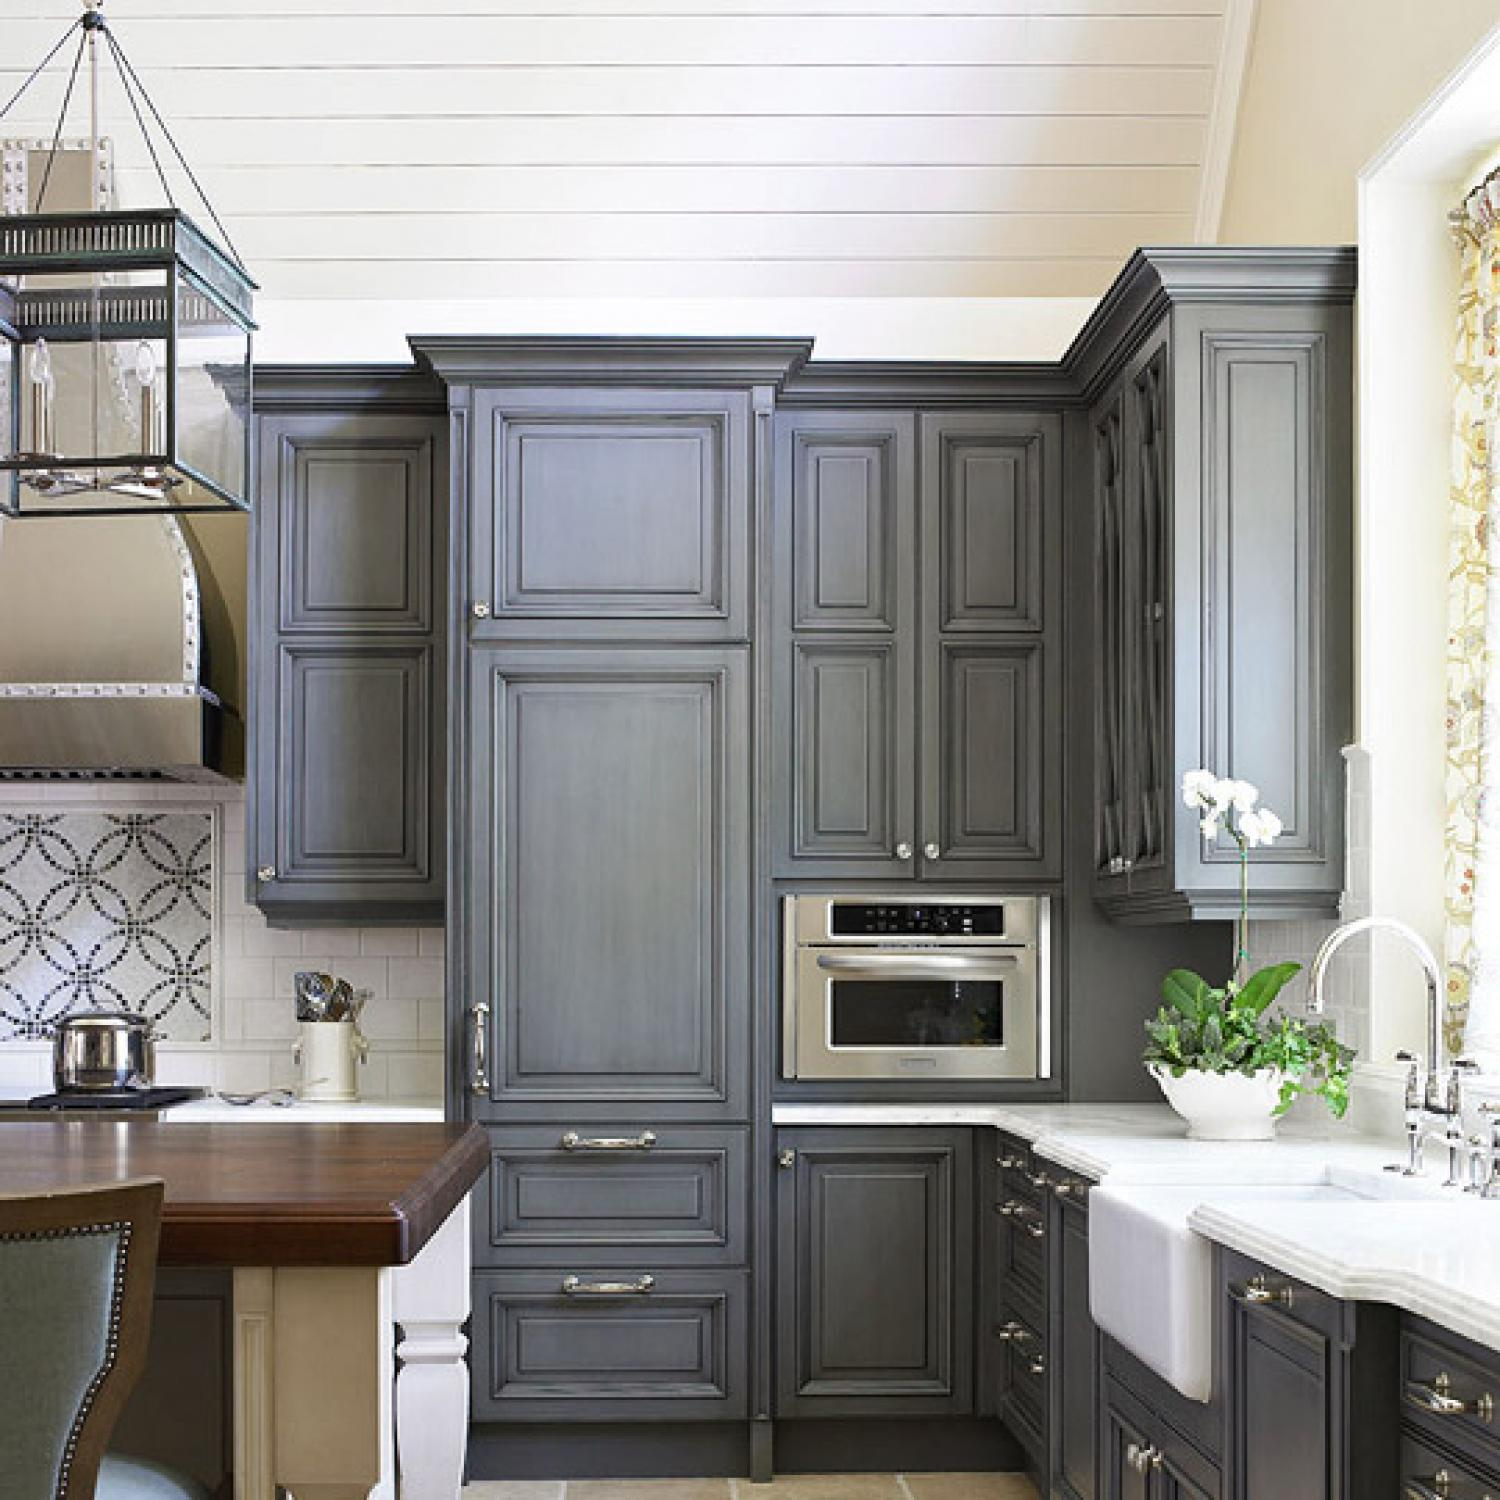 Kitchen Cabinets: Kitchen Cabinets With Furniture-Style Flair